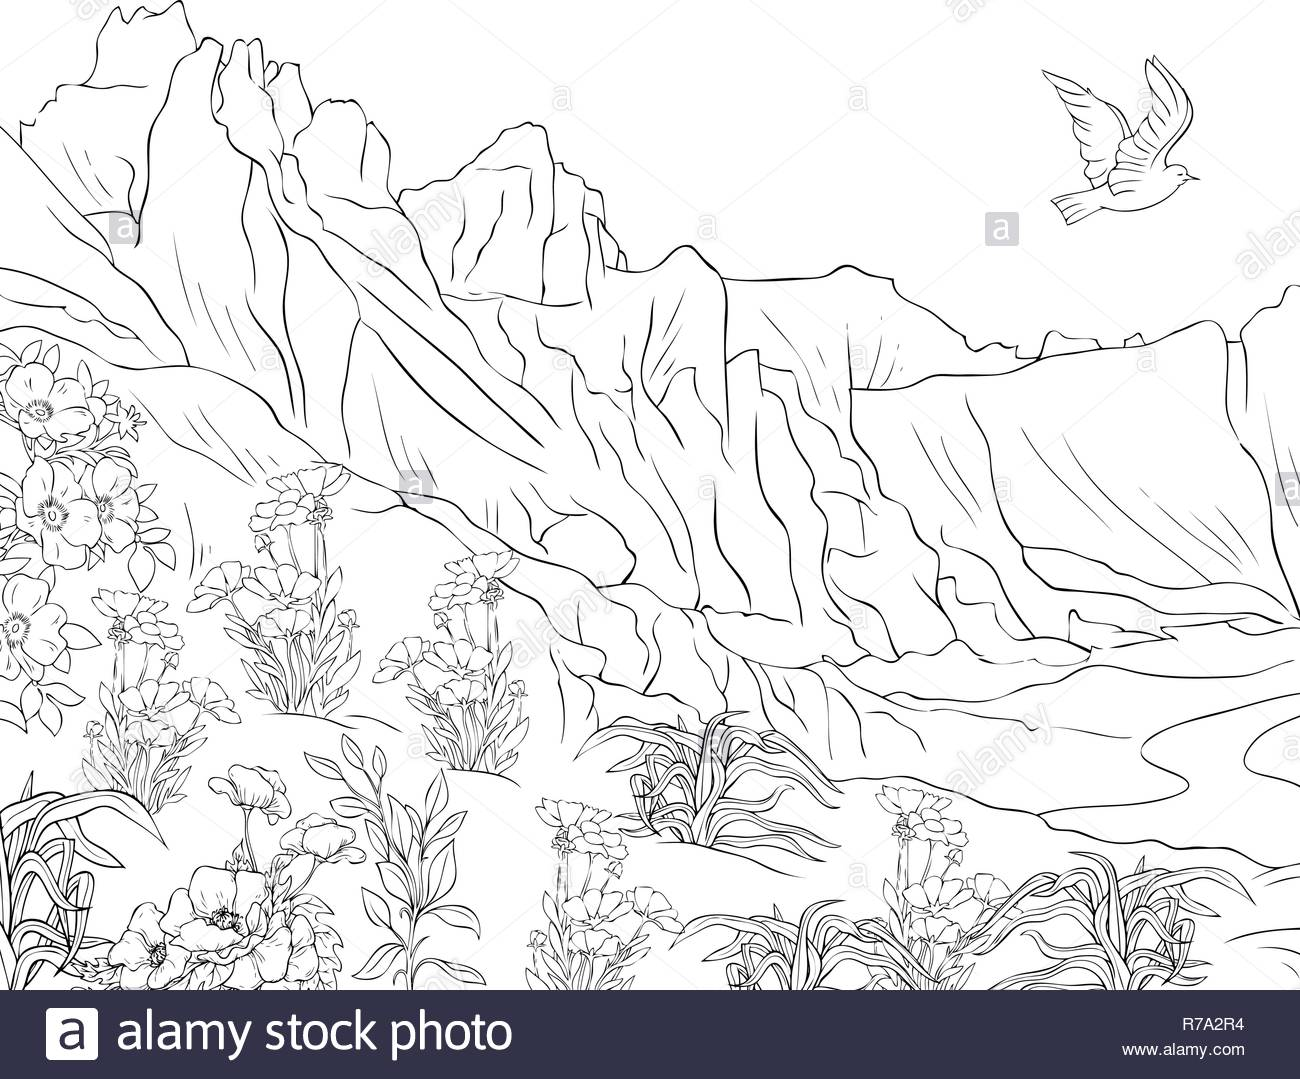 a nature landscape with mountainsflowers and lflying bird image for adultsline art style illustration for printa coloring bookpage for relaxing a R7A2R4